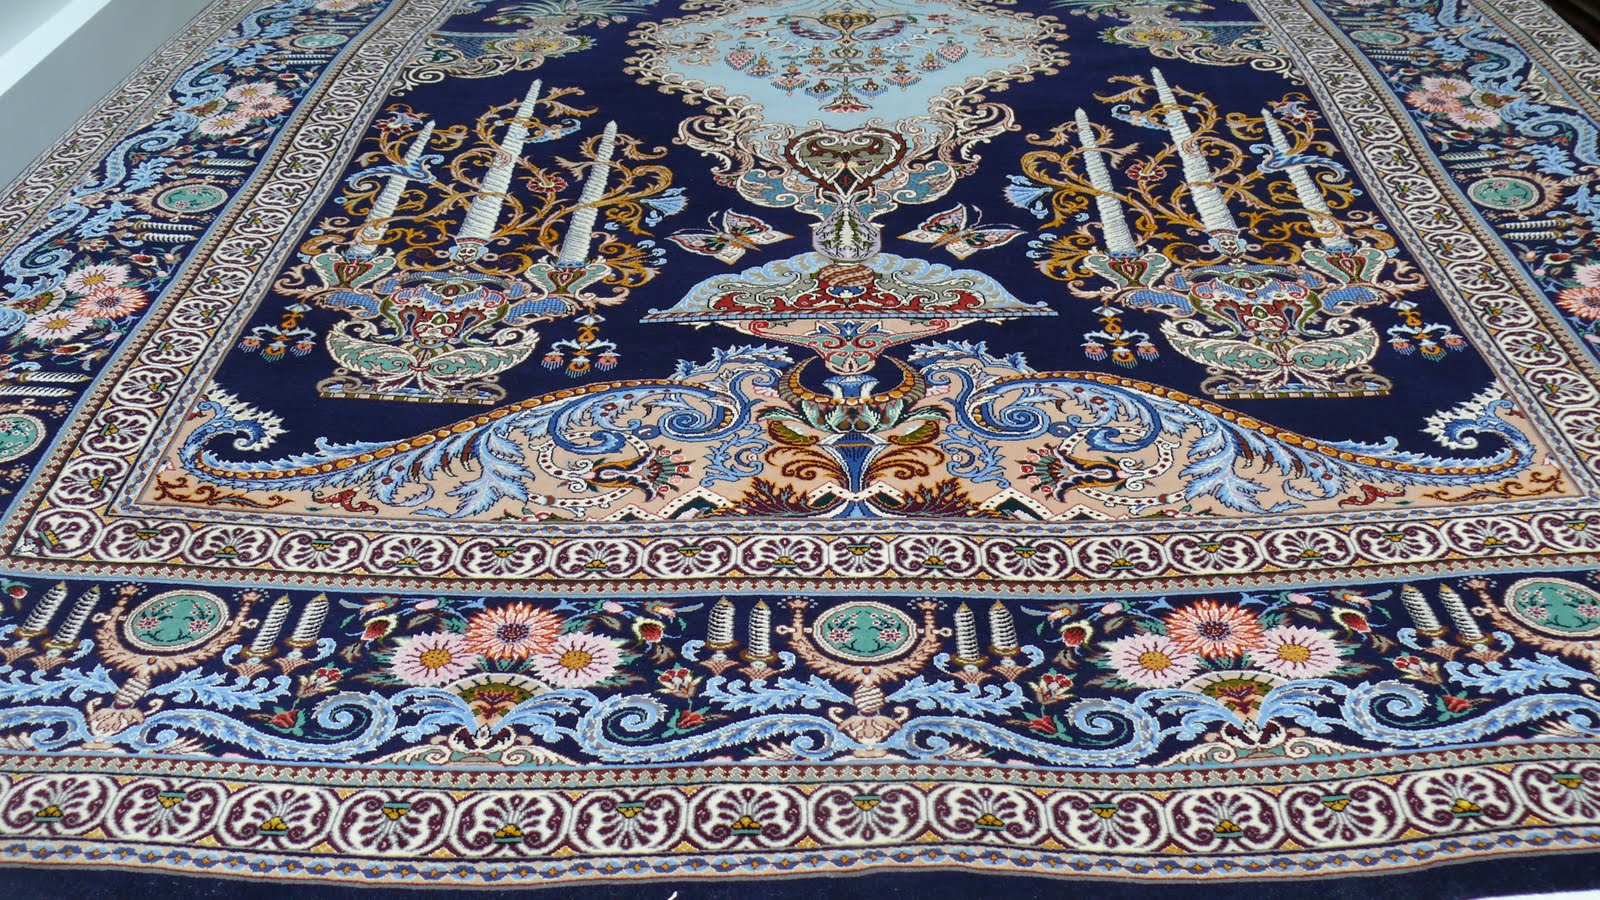 As Part Of Its Ongoing Corporate Social Responsibility Program The House Persian Rugs Is Pleased To Donate Three Exquisite Handmade Carpets Banff